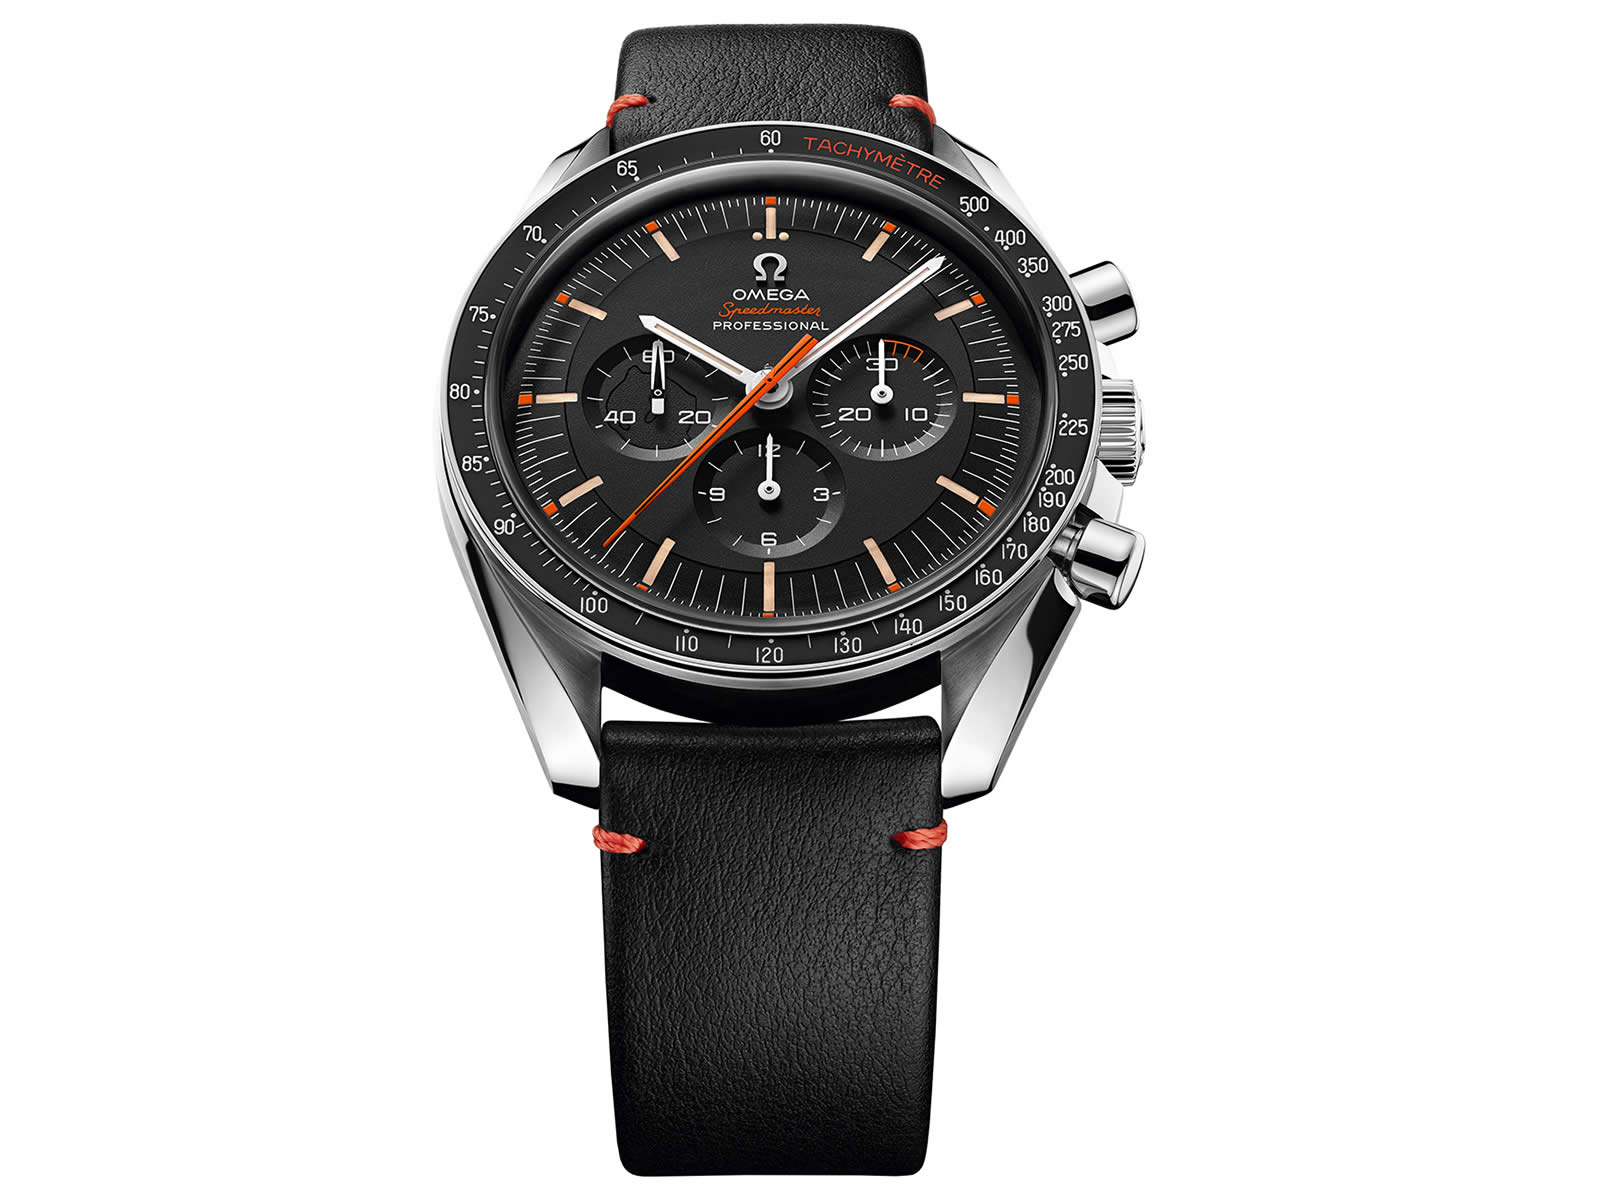 311-12-42-30-01-001-omega-speedmaster-limited-edition-42mm-ultraman-9-.jpg